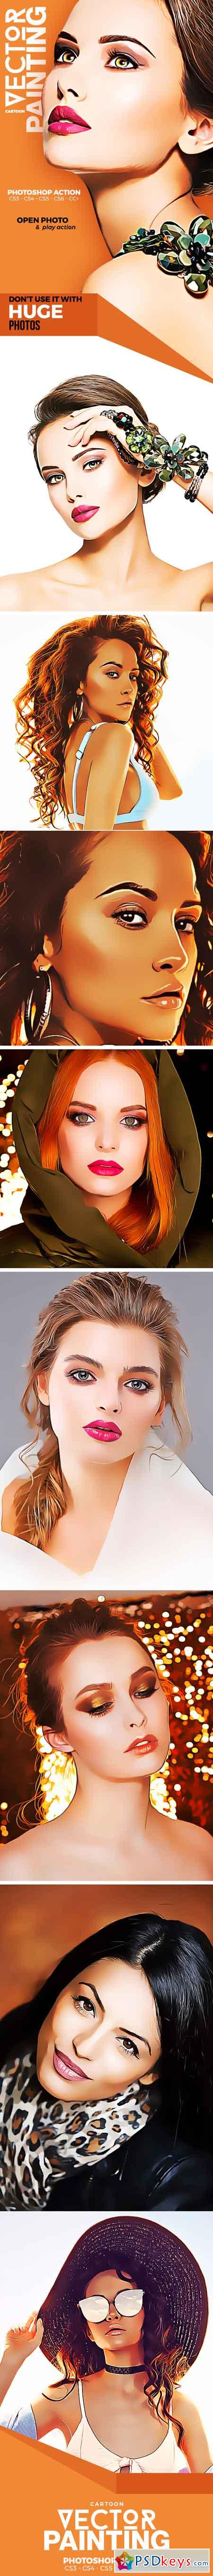 Cartoon Vector Painting Photoshop Action 21616686